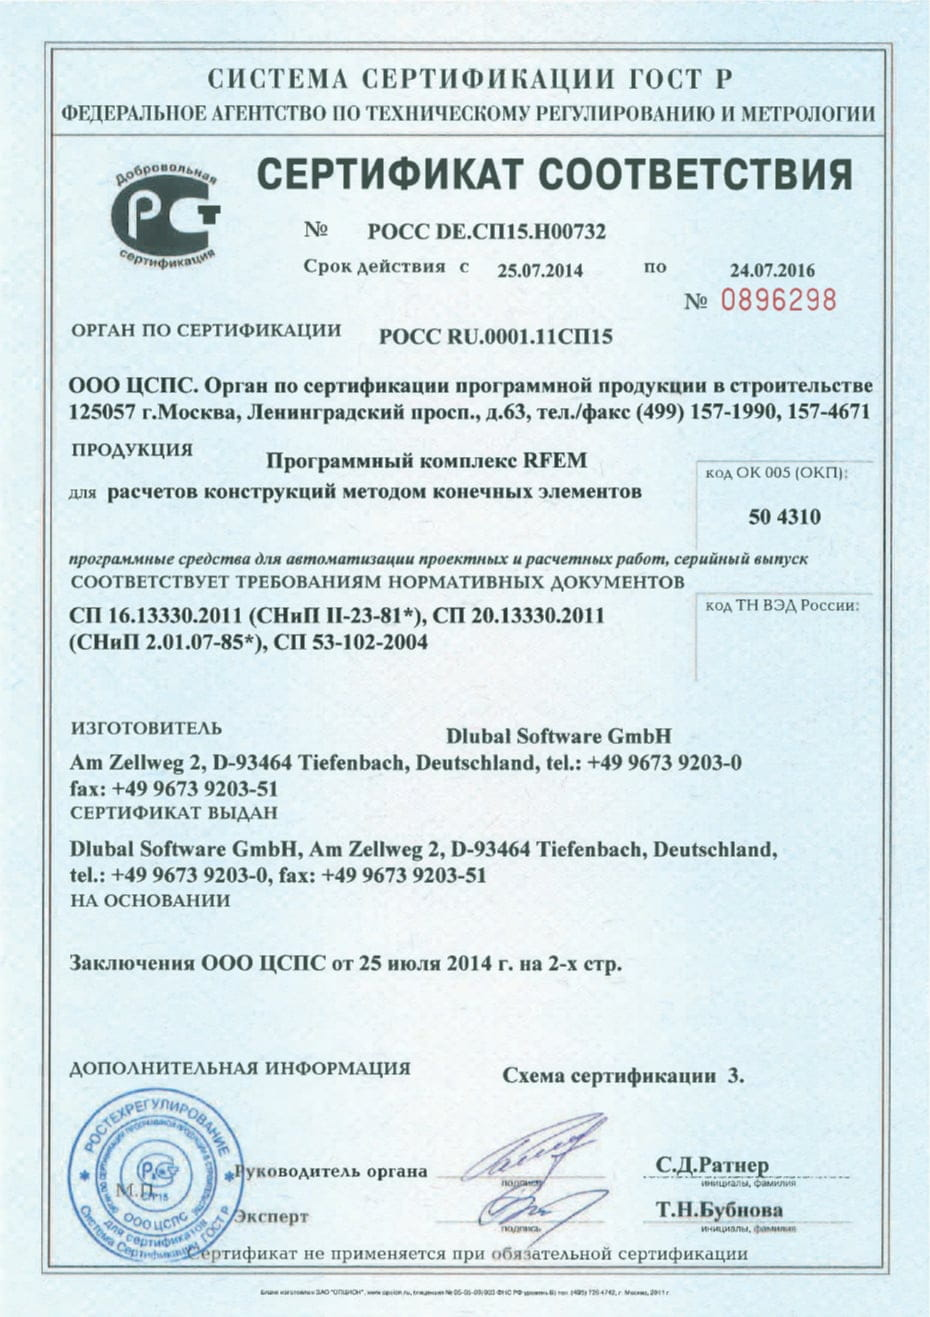 Certificate for RFEM and RF-STEEL SP for Russia